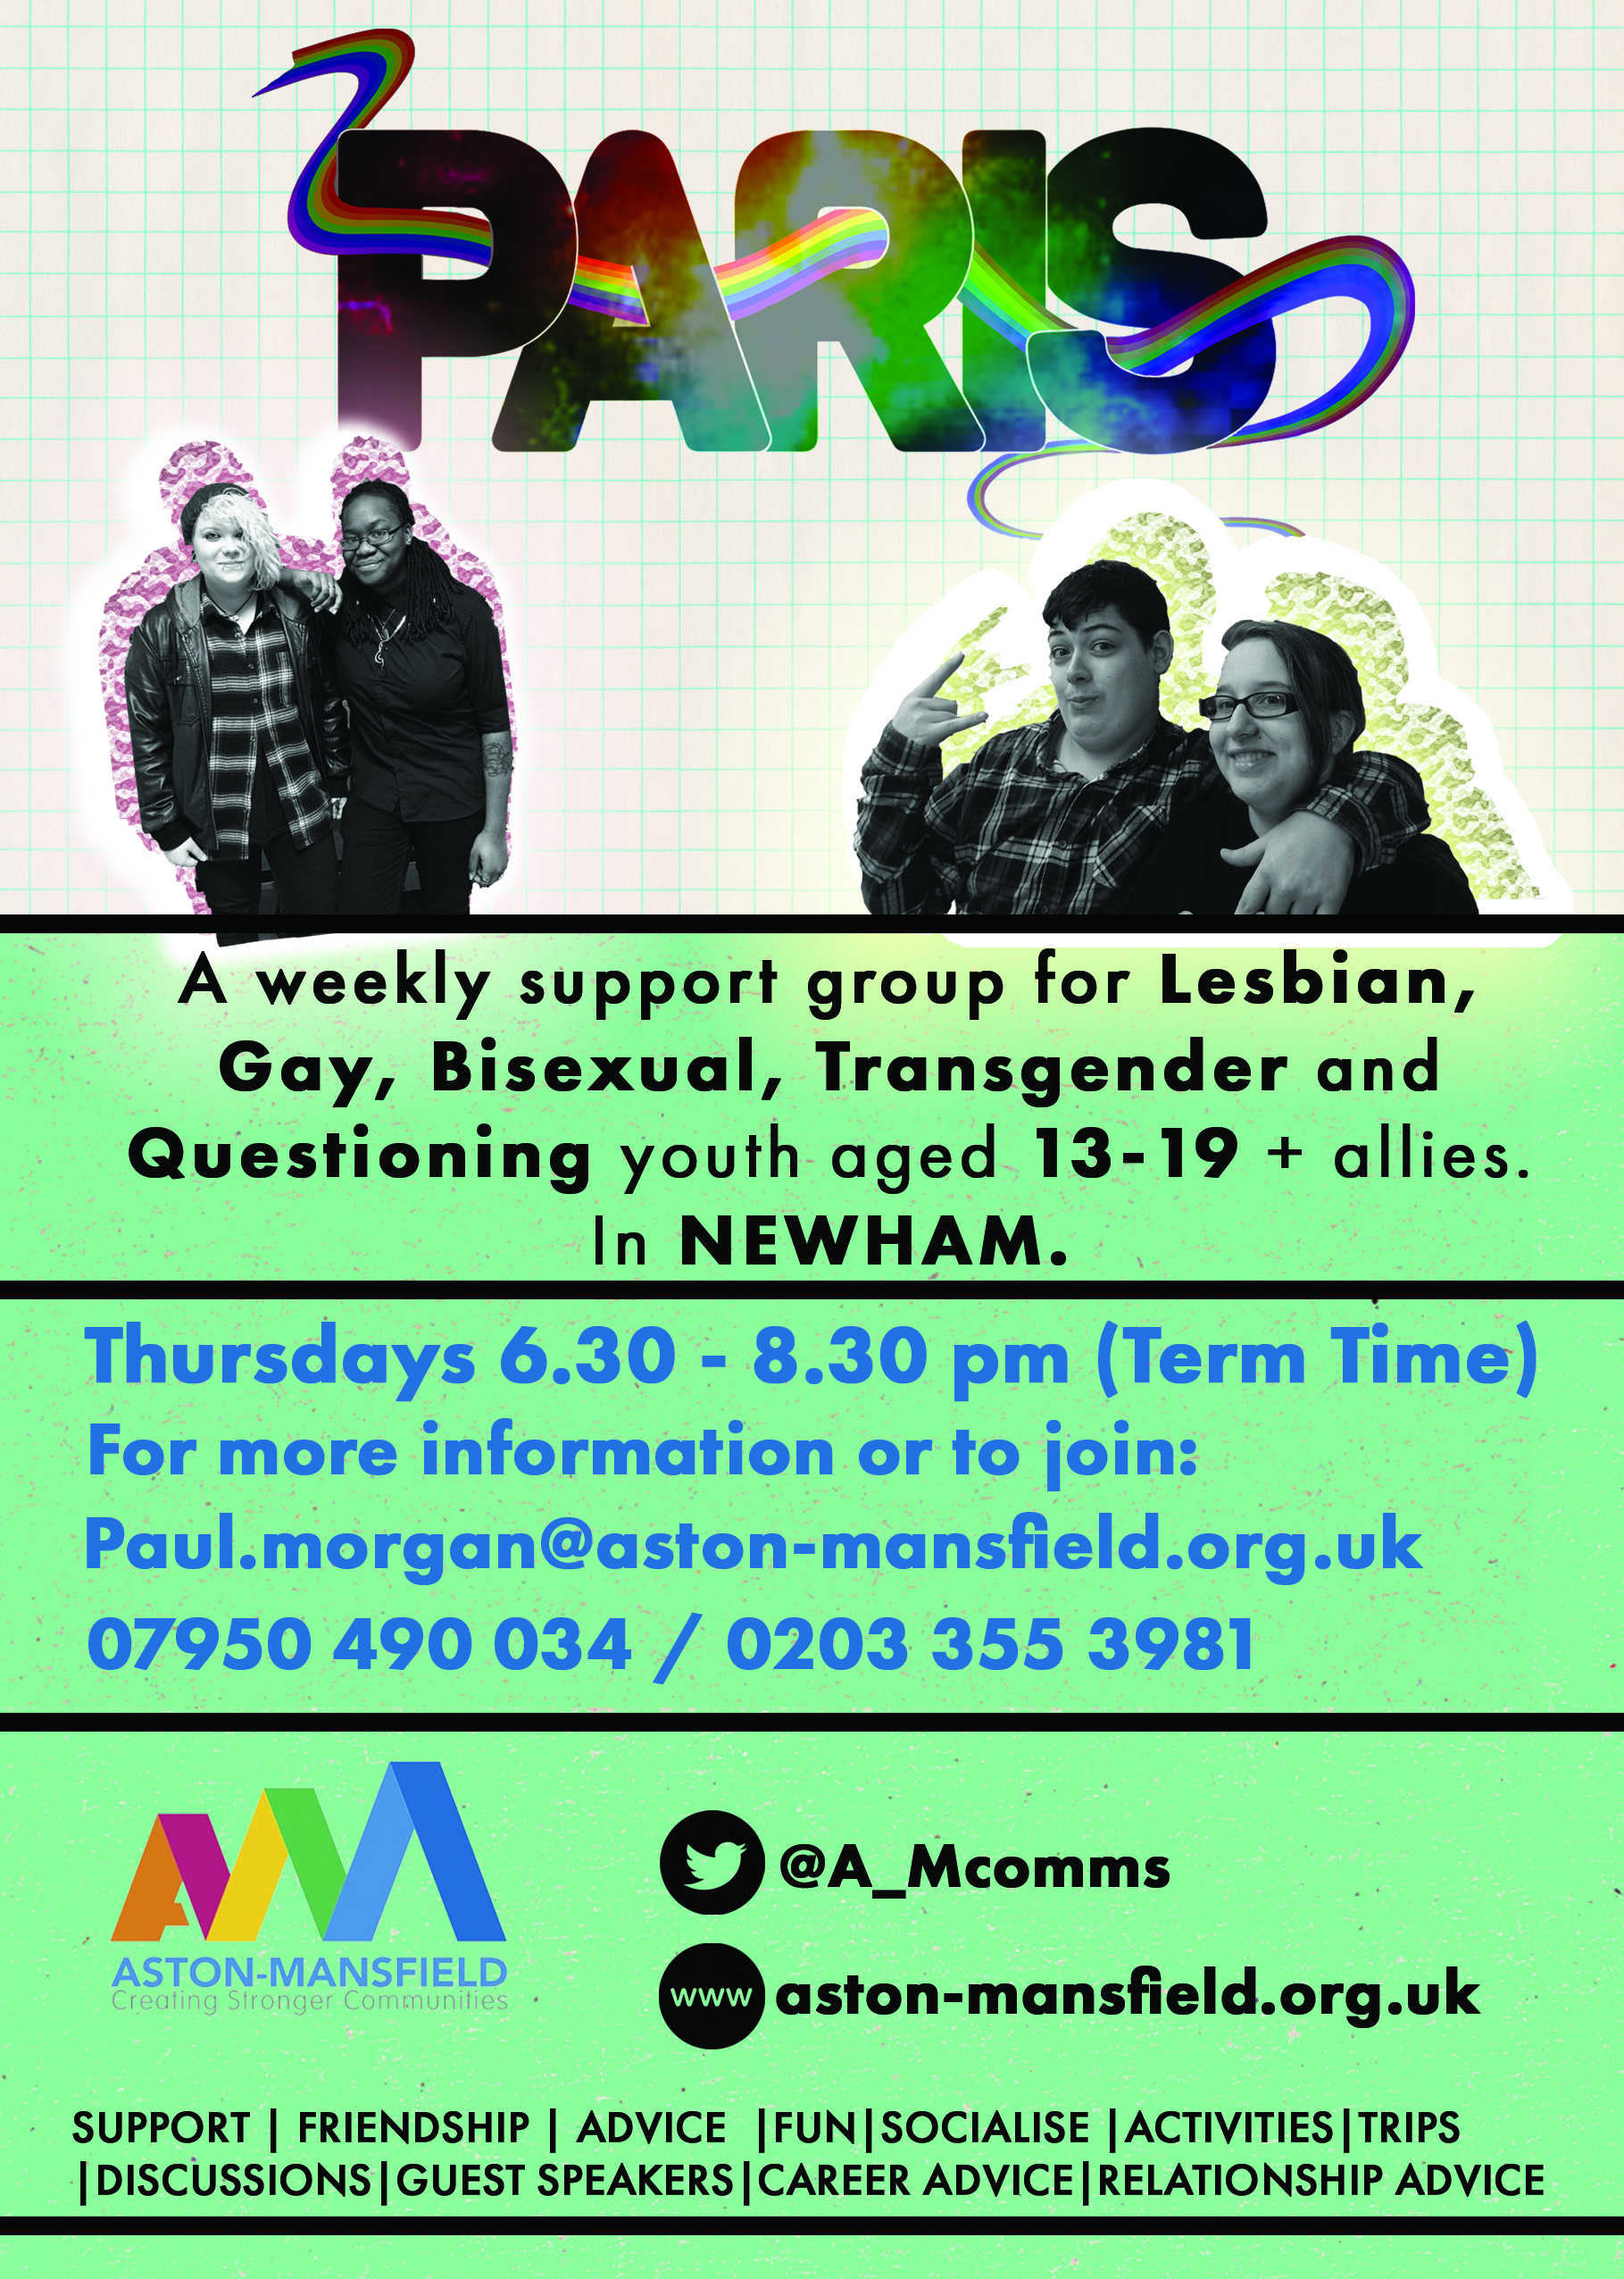 'PARIS' – LGBTQ+ youth group aged 13 -19